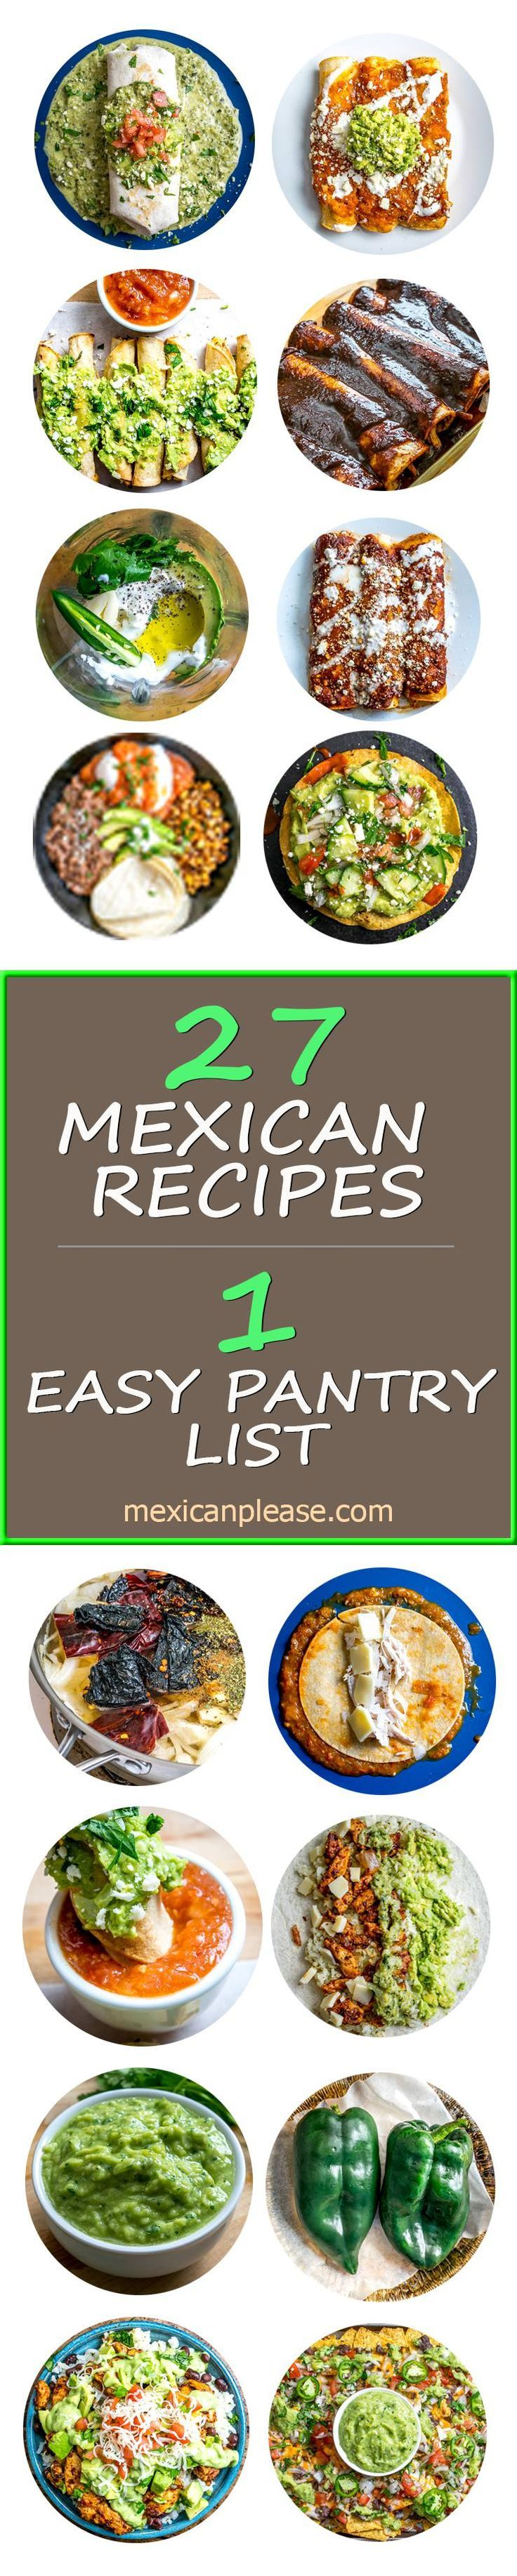 27 authentic Mexican food recipes all from a simple pantry list. This free Mexican Cooking Survival Guide is the quickest and easiest way to get your home kitchen pumping out the best Mexican food in town.  Enchiladas, tacos, burritos, salsas, taquitos, egg dishes, nachos, and more!!  http://mexicanplease.com